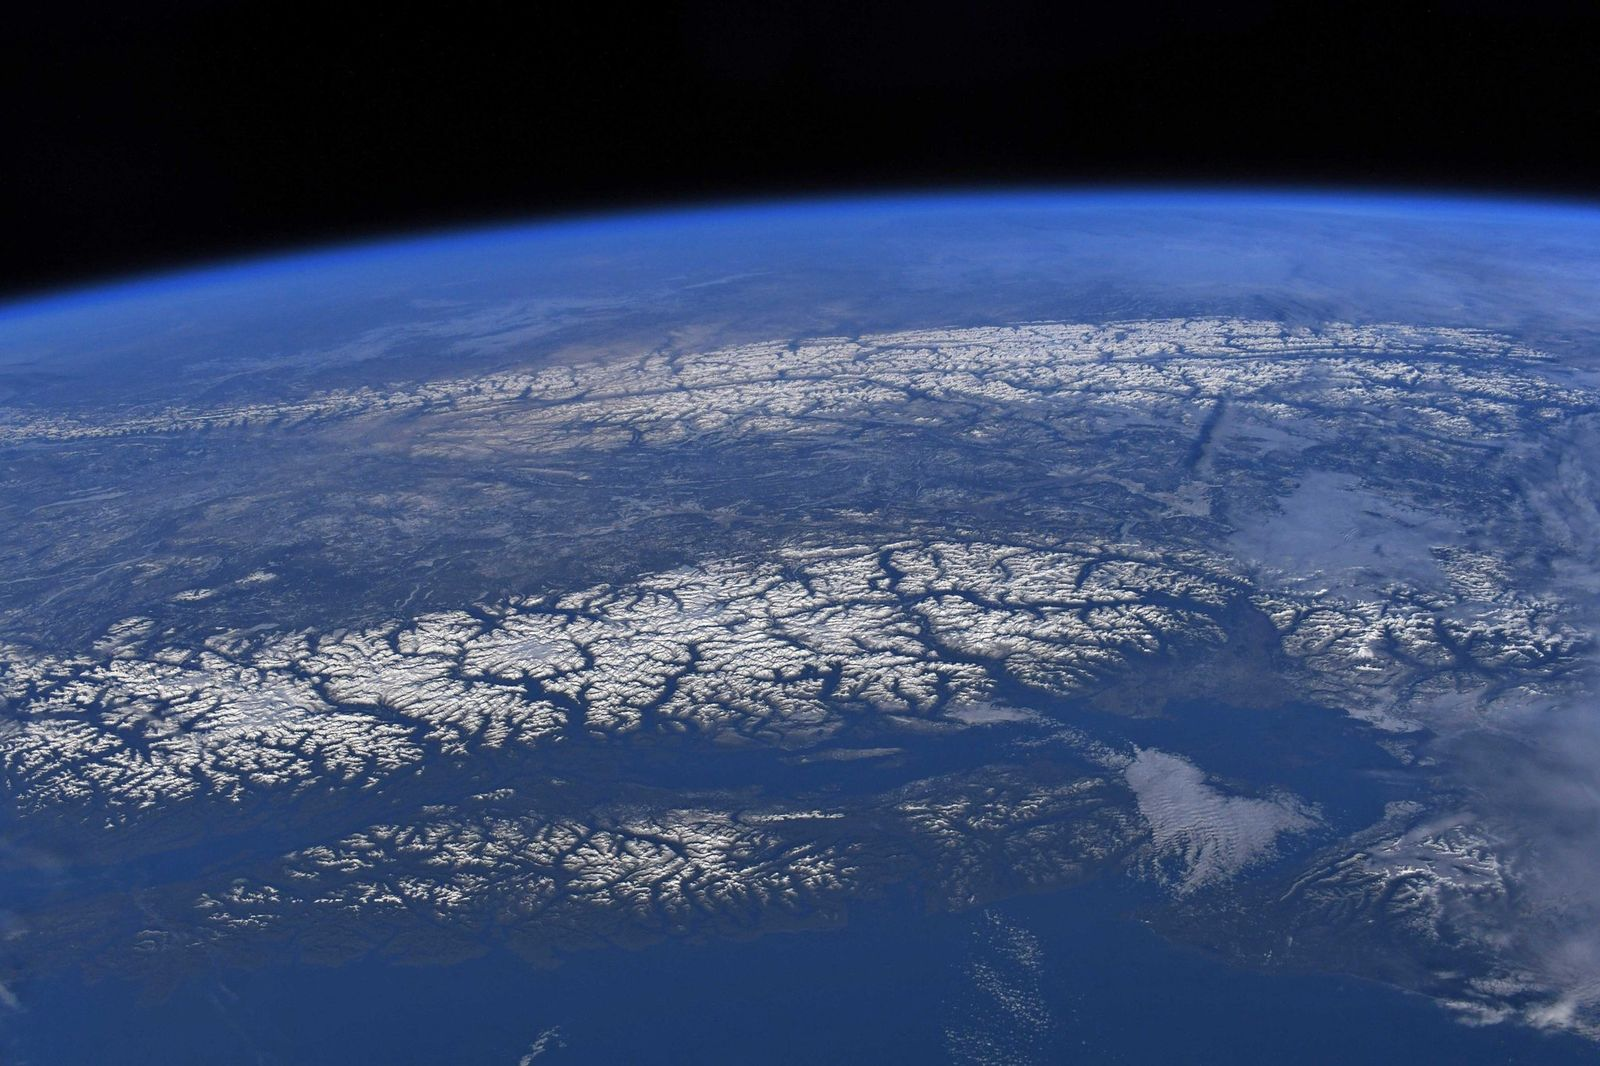 Vancouver?s snowcapped mountains resplendent in the light of dusk.  (Photo & Caption David Saint-Jacques, NASA)